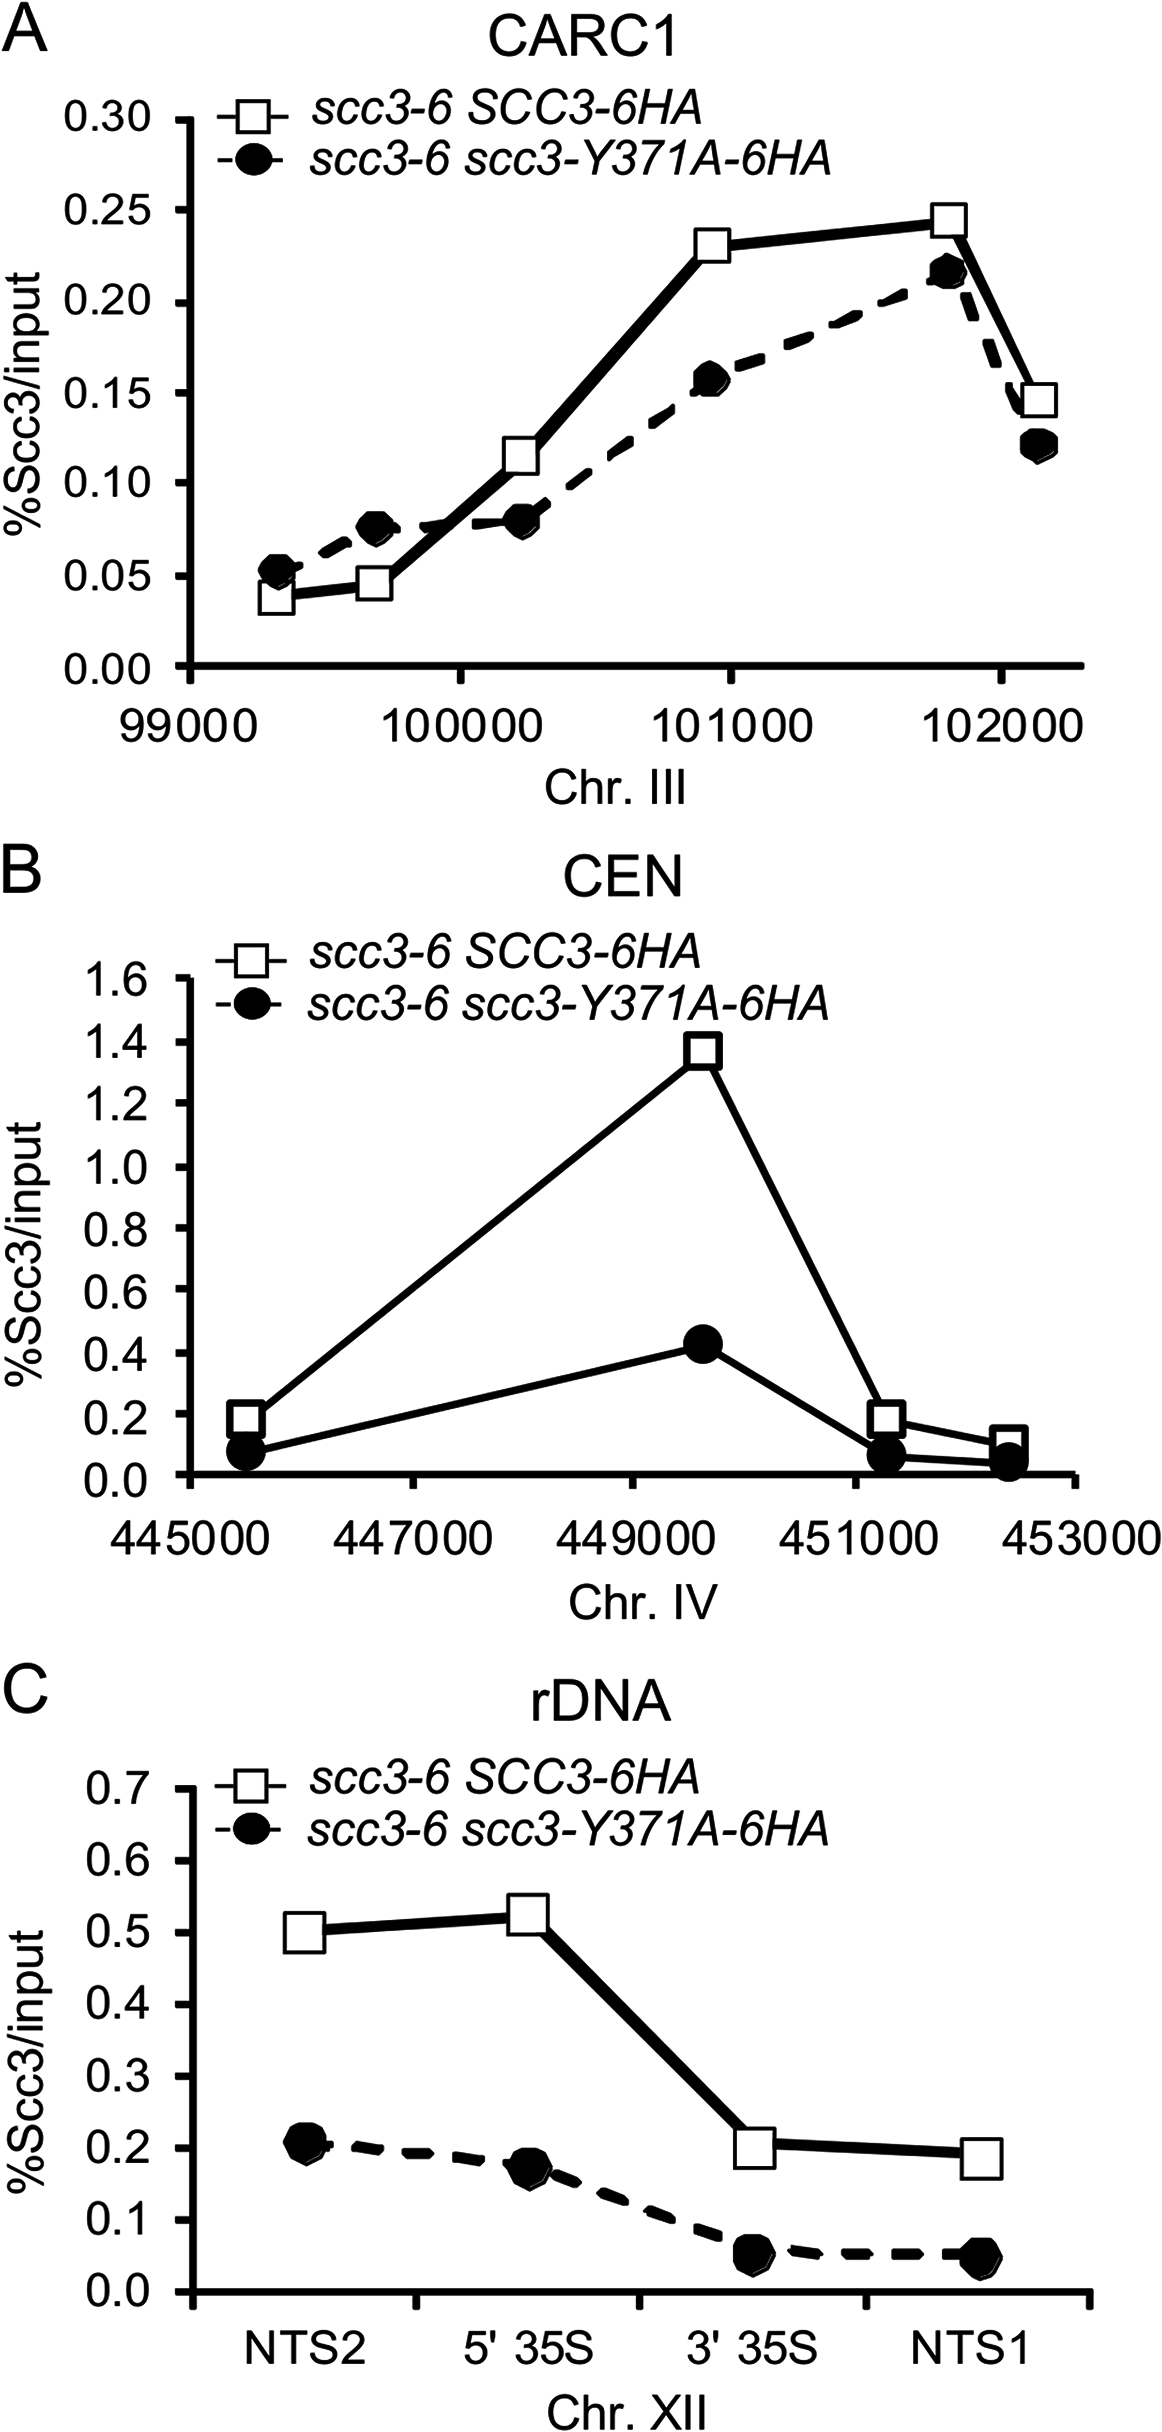 scc3 Y371 binding to the <i>rDNA</i> is reduced.